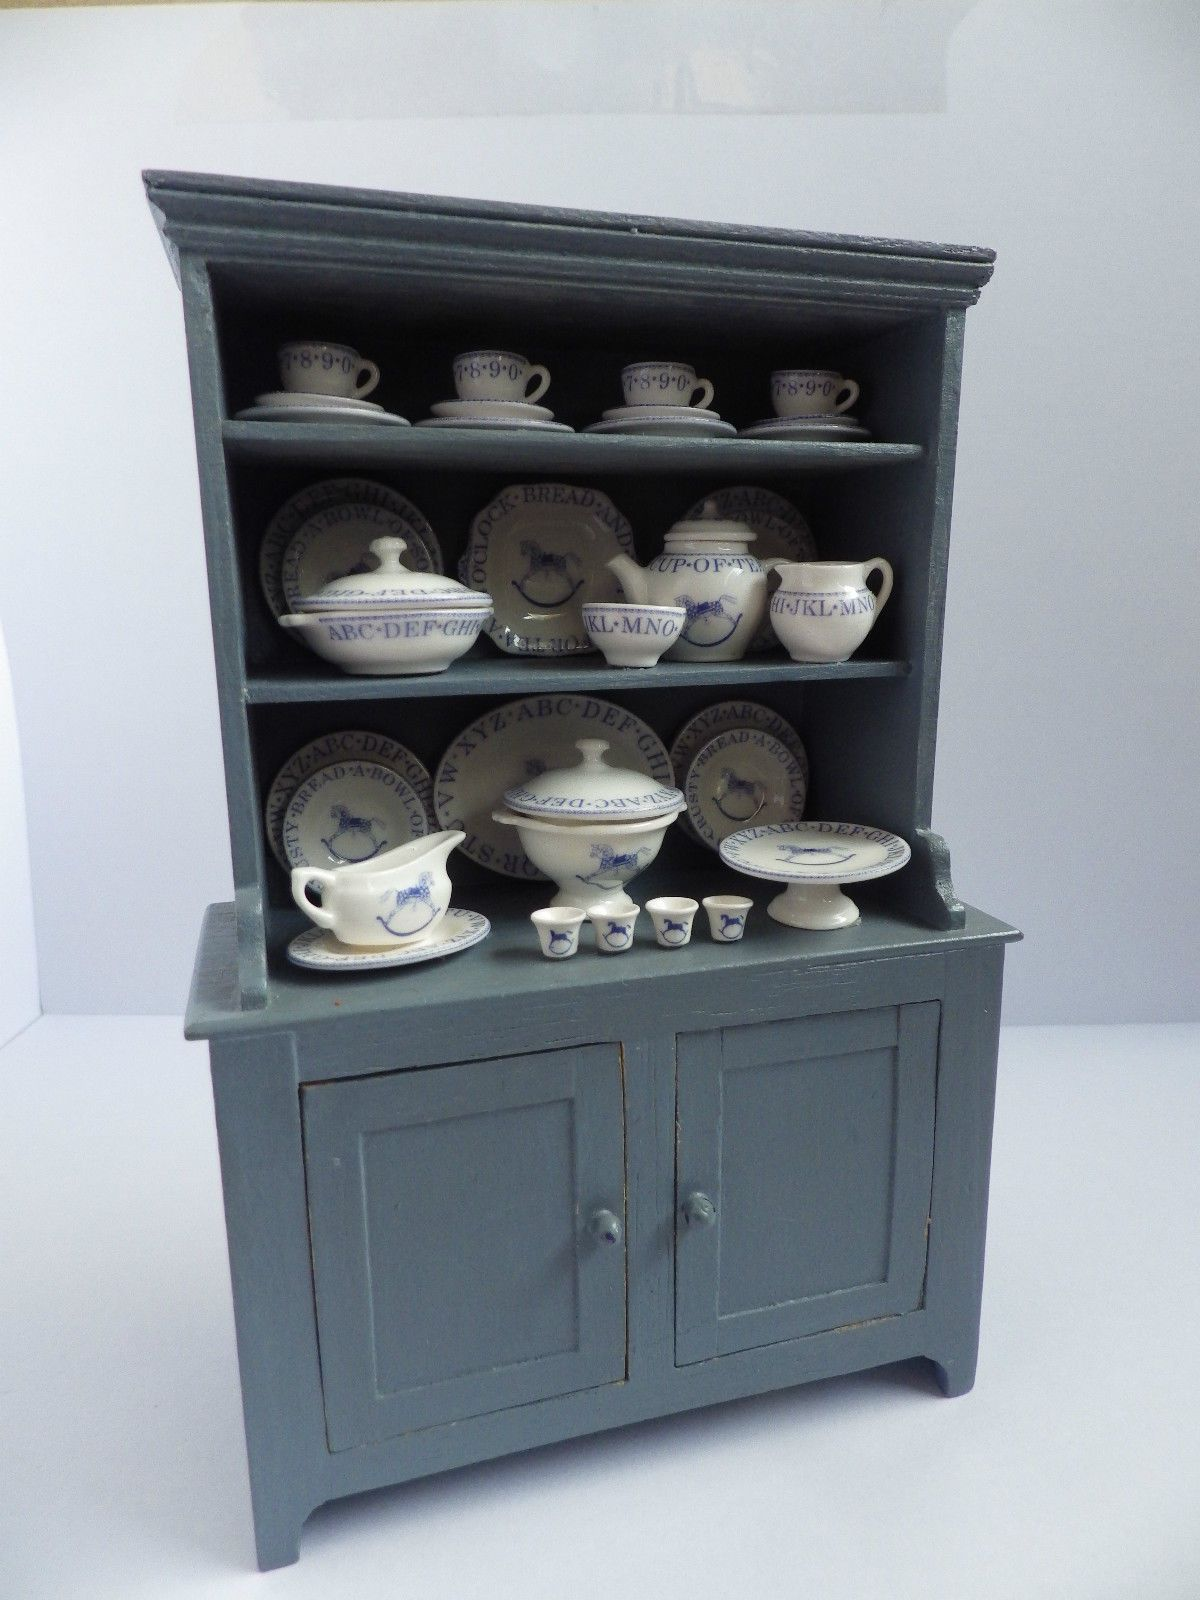 wedgewood blue small dresser artisan made & signed contents NOT